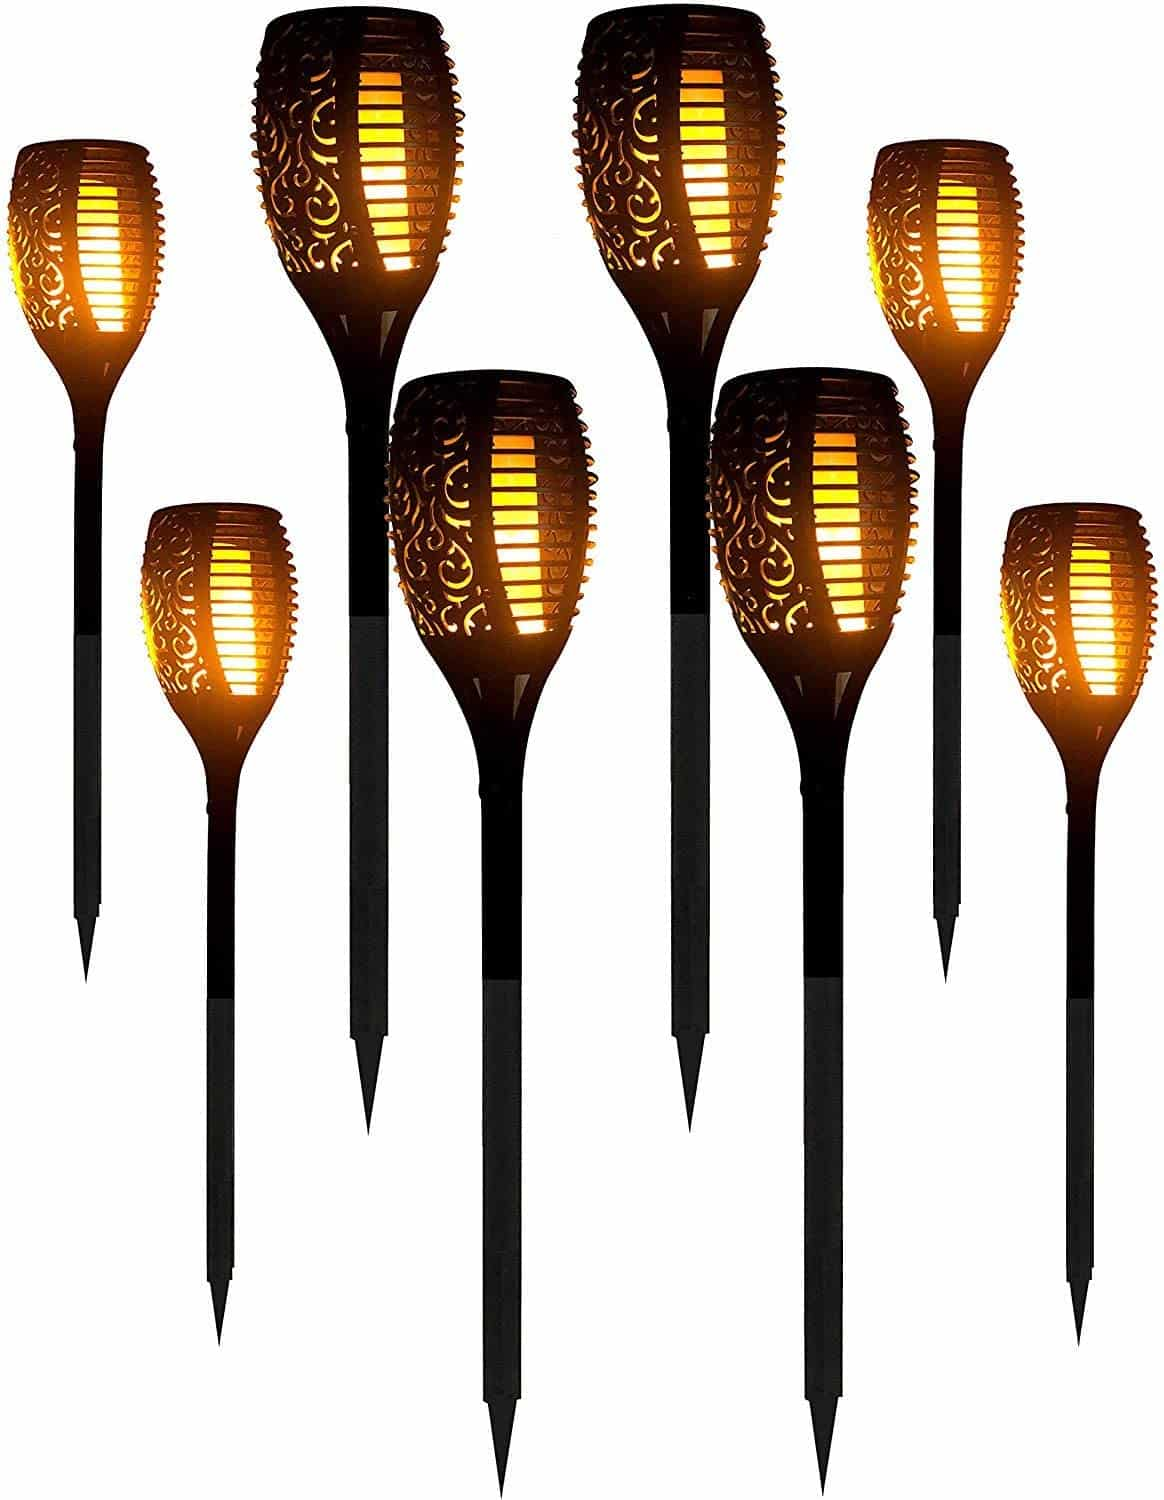 Antonio Cabrera Home Collection LED Flame light